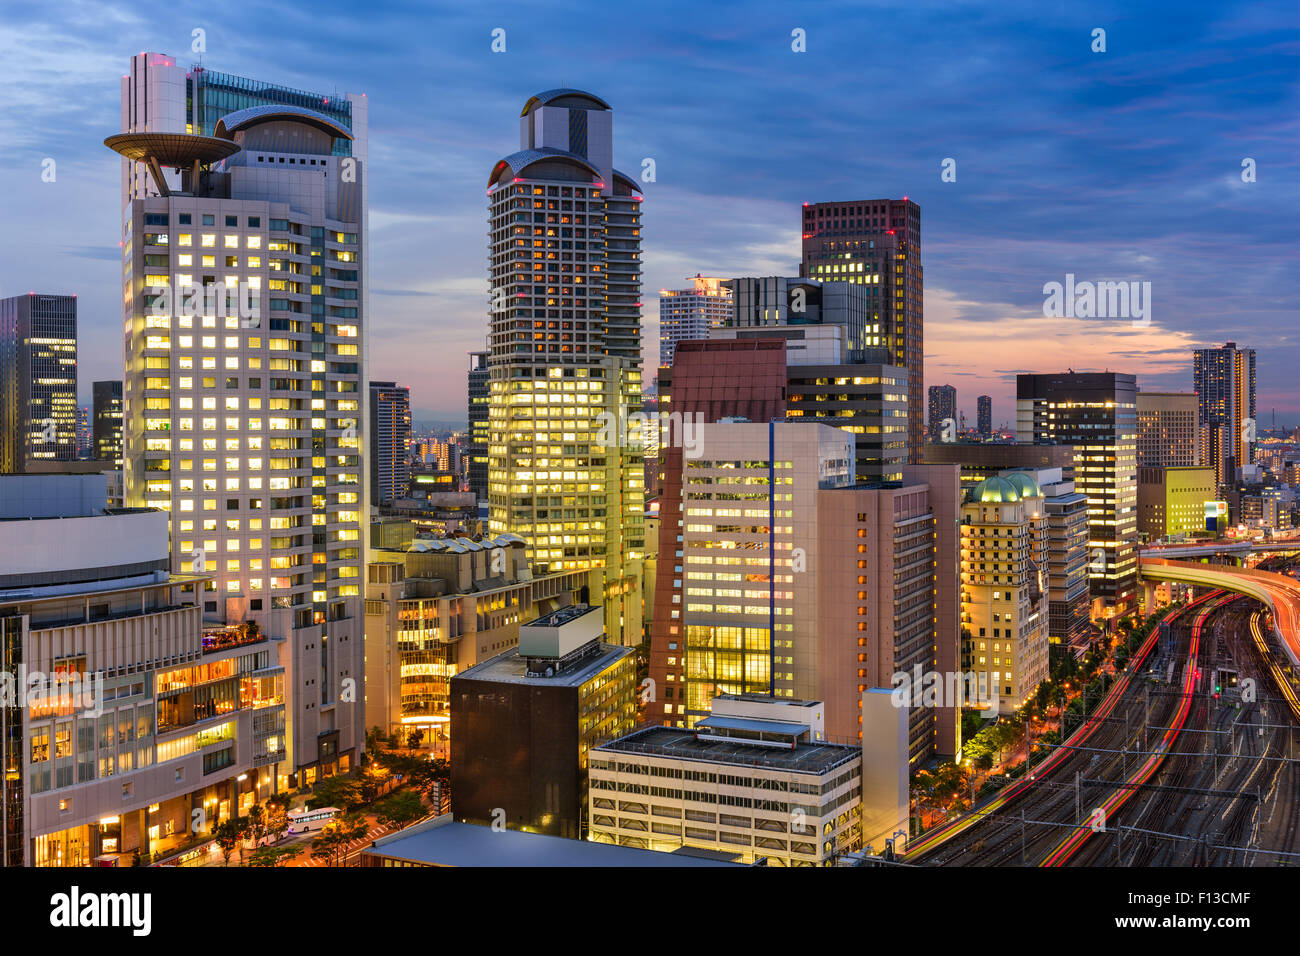 Osaka, Japan cityscape in the Umeda District. - Stock Image